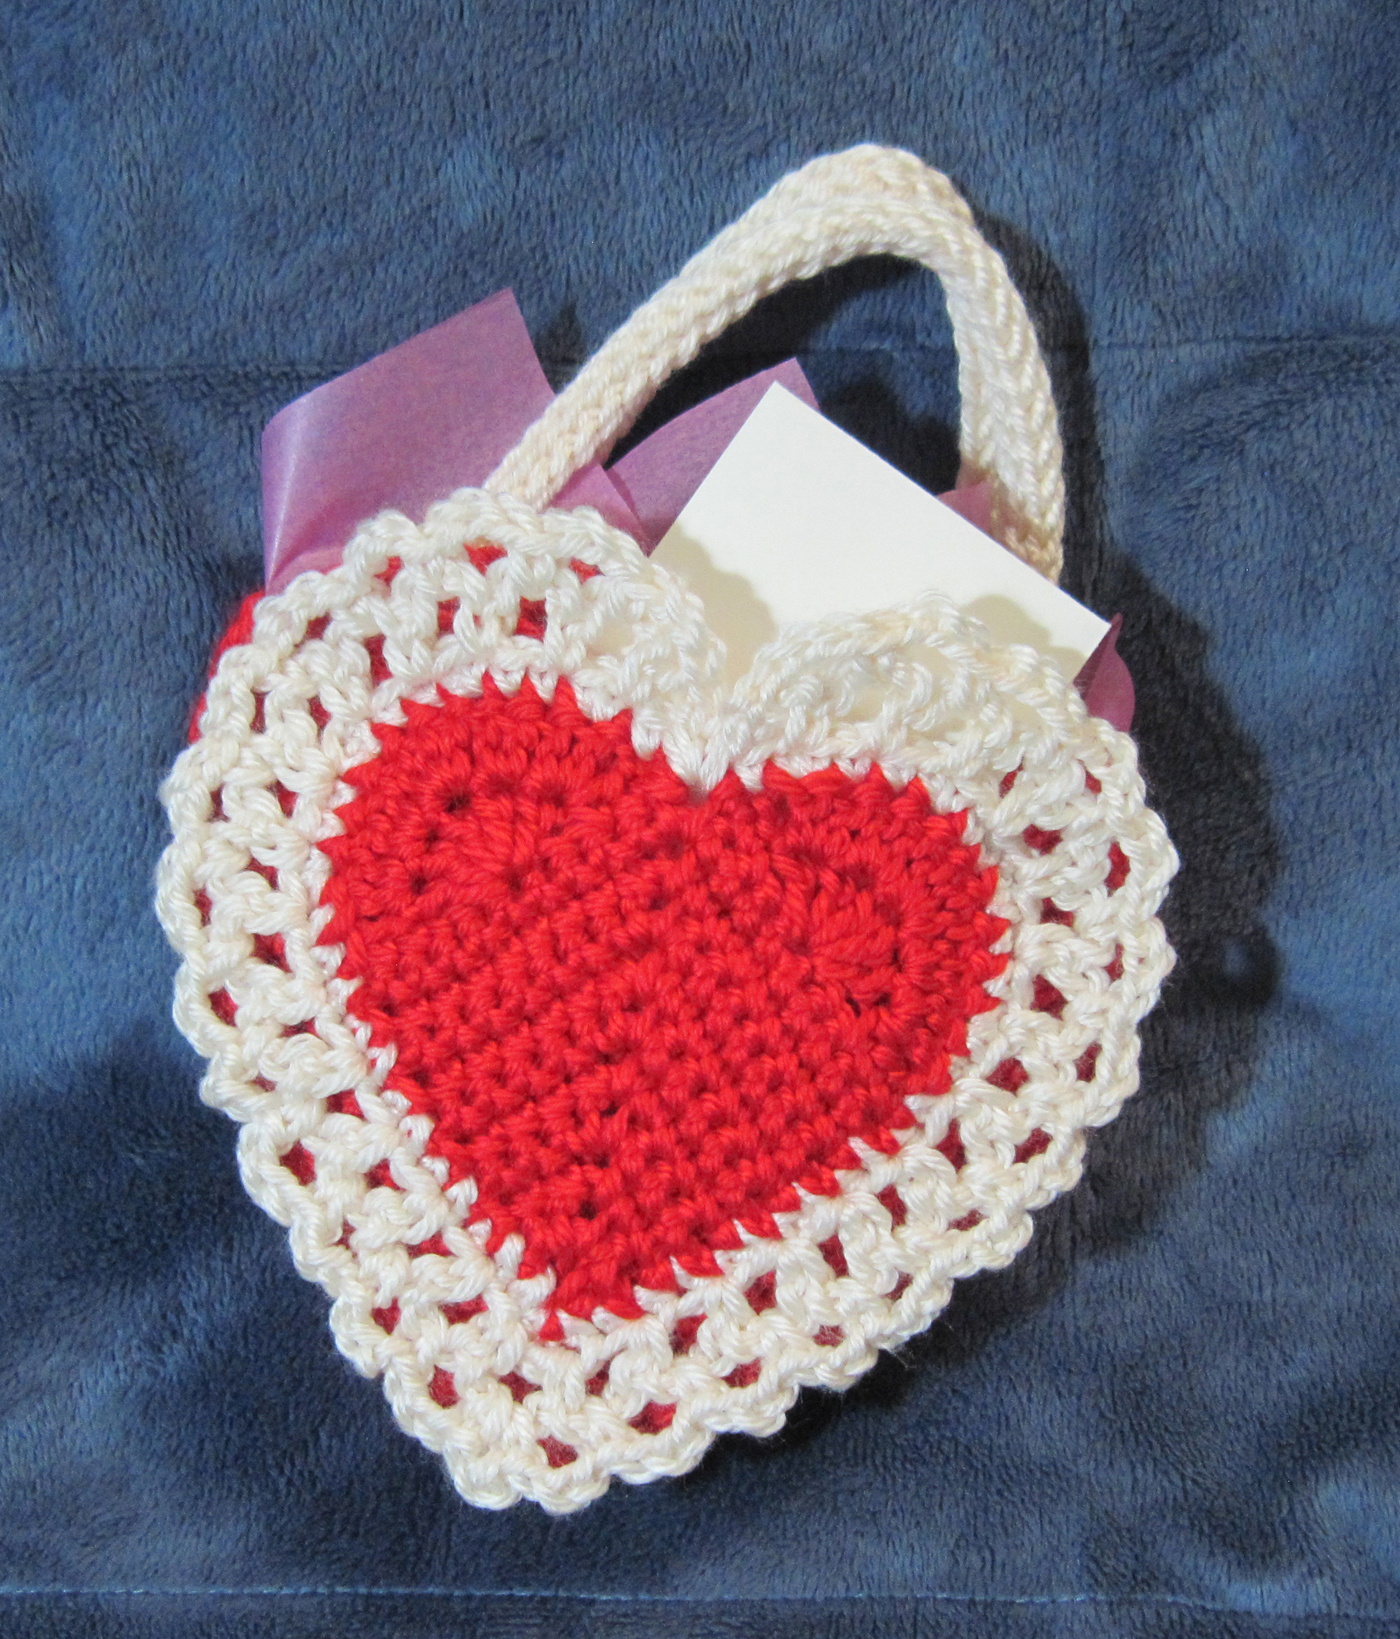 Crochet Little Bag : ... little pocket, where a note or small card can be tucked away